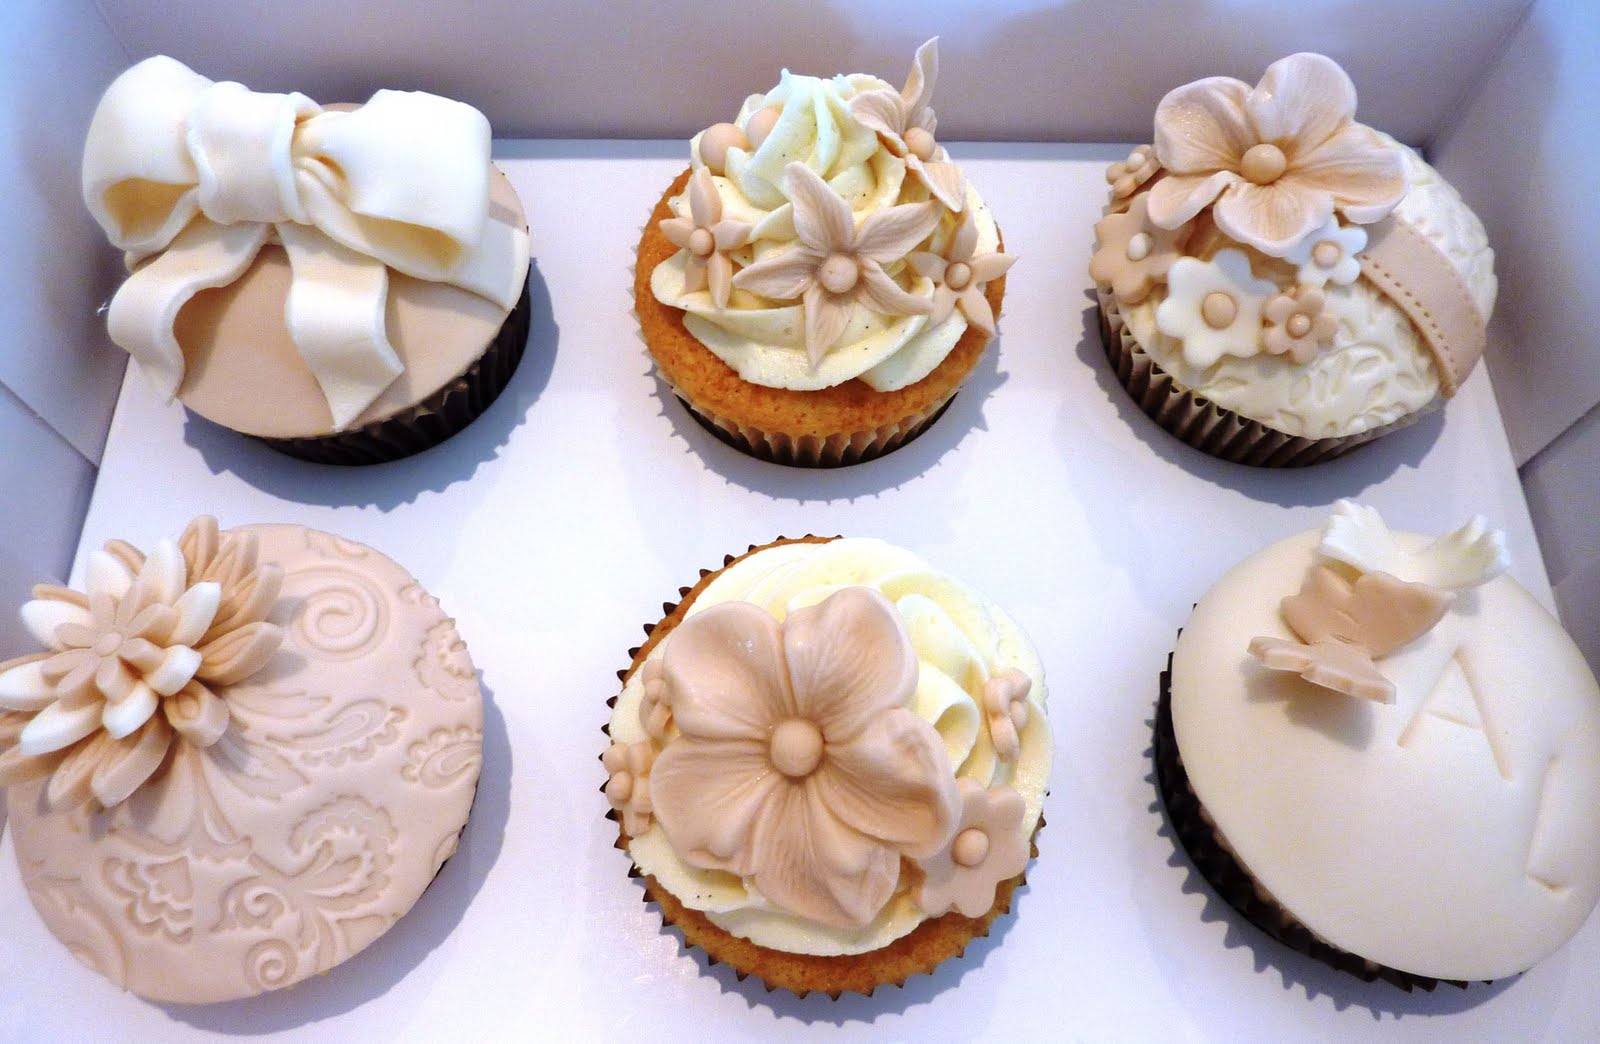 Vanilla Lily Cake Design Wedding Cupcakes